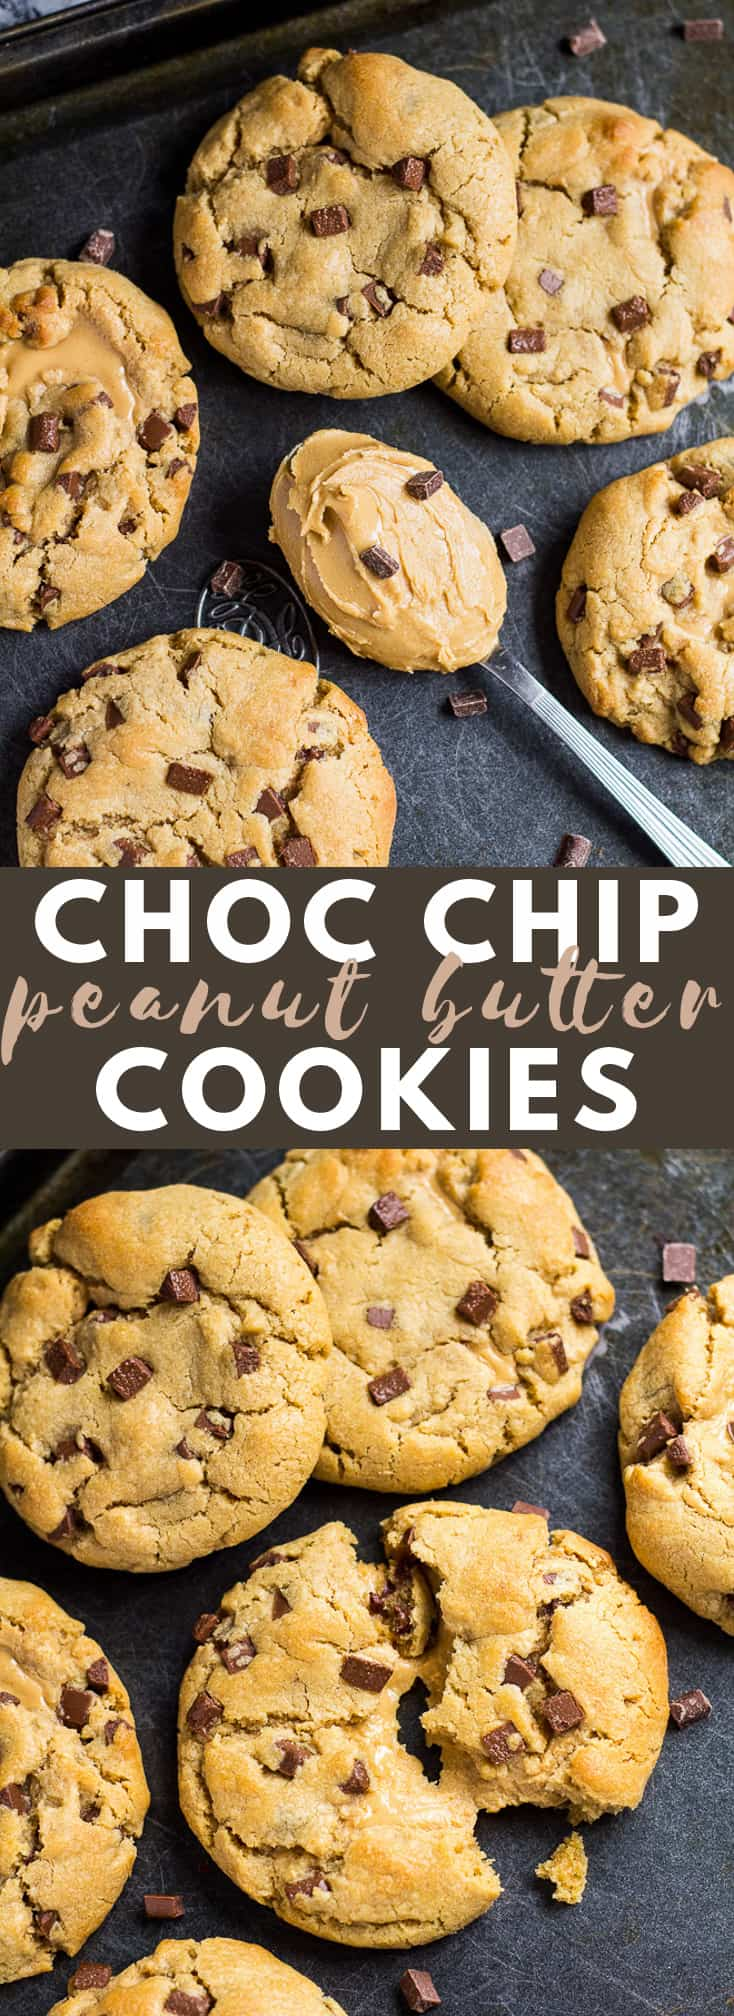 Chocolate Chip Peanut Butter Cookies - Deliciously thick and chewy cookies that are loaded with peanut butter flavour, and full of chocolate chips! #peanutbutter #cookies #cookierecipes